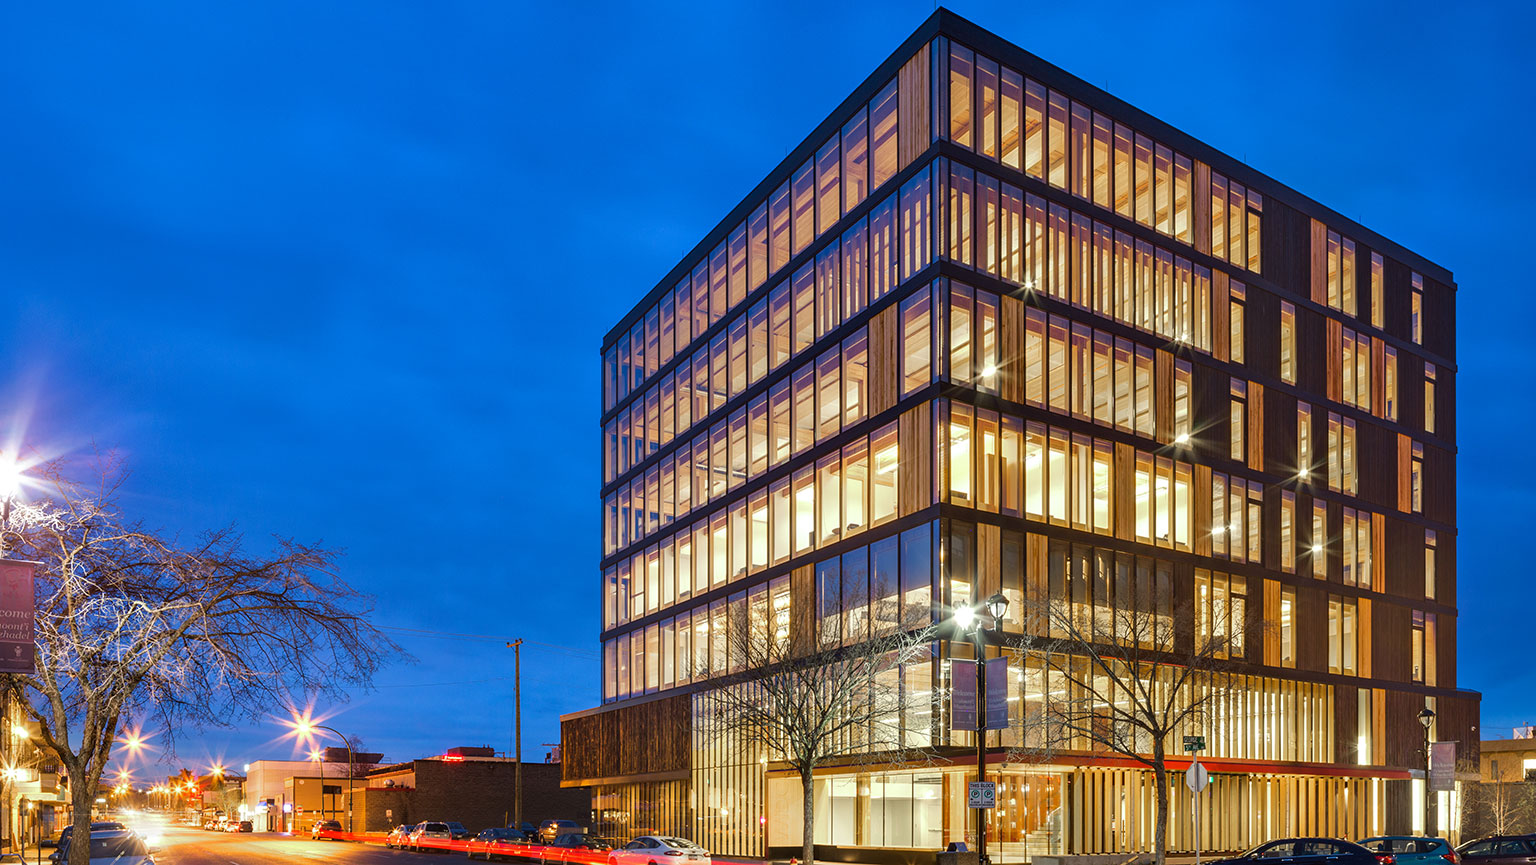 Photograph of WIDC by Ema Peter/courtesy of Michael Green Architecture